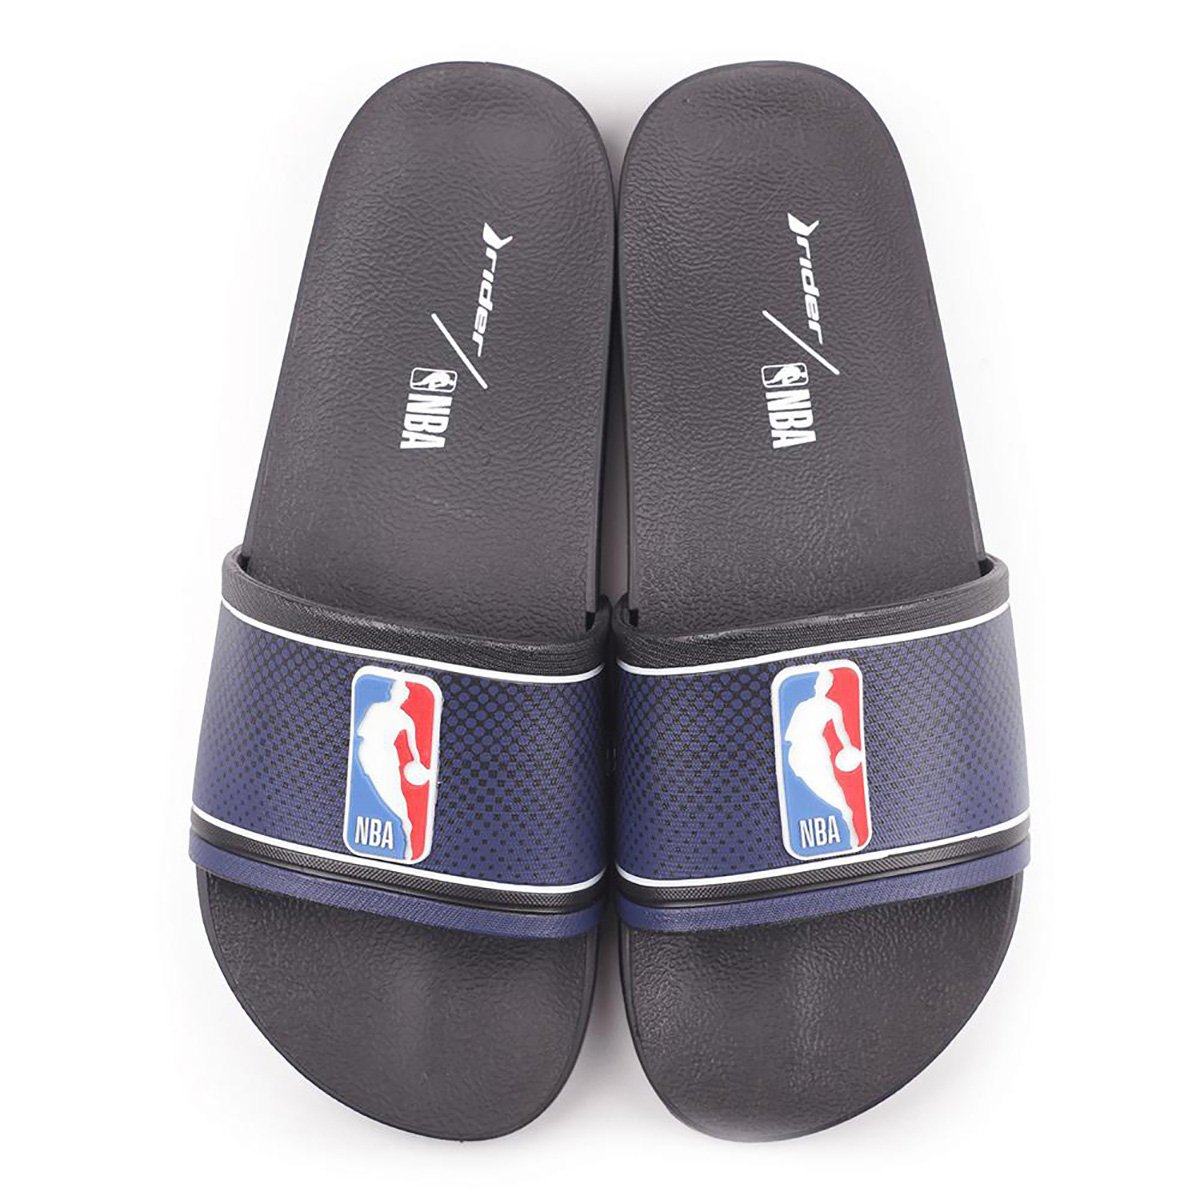 Chinelo Slide NBA Rider Full 86 Masculino